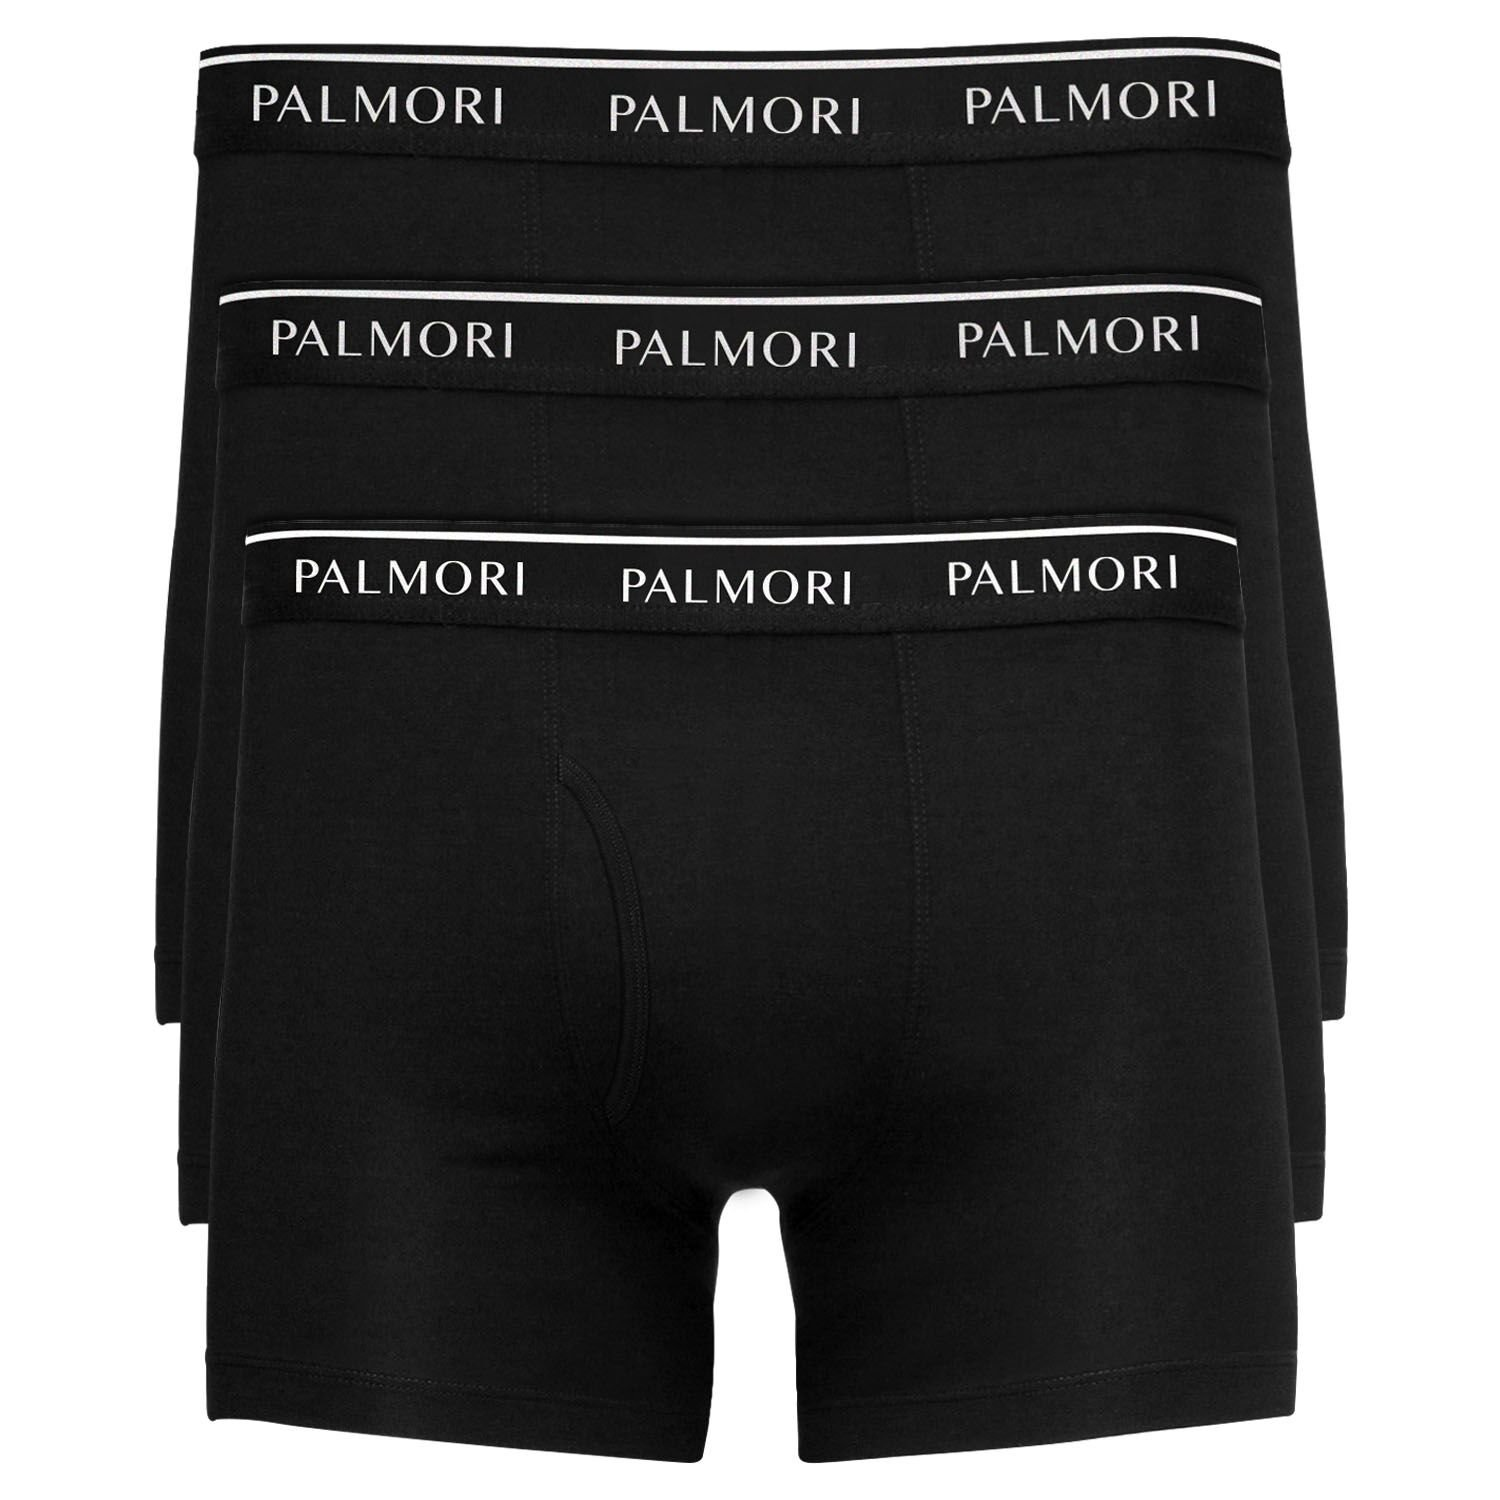 Palmori 3 Pack Men's Boxer Briefs, Cotton Underwear for Mens and Boys (X-Large, Black)